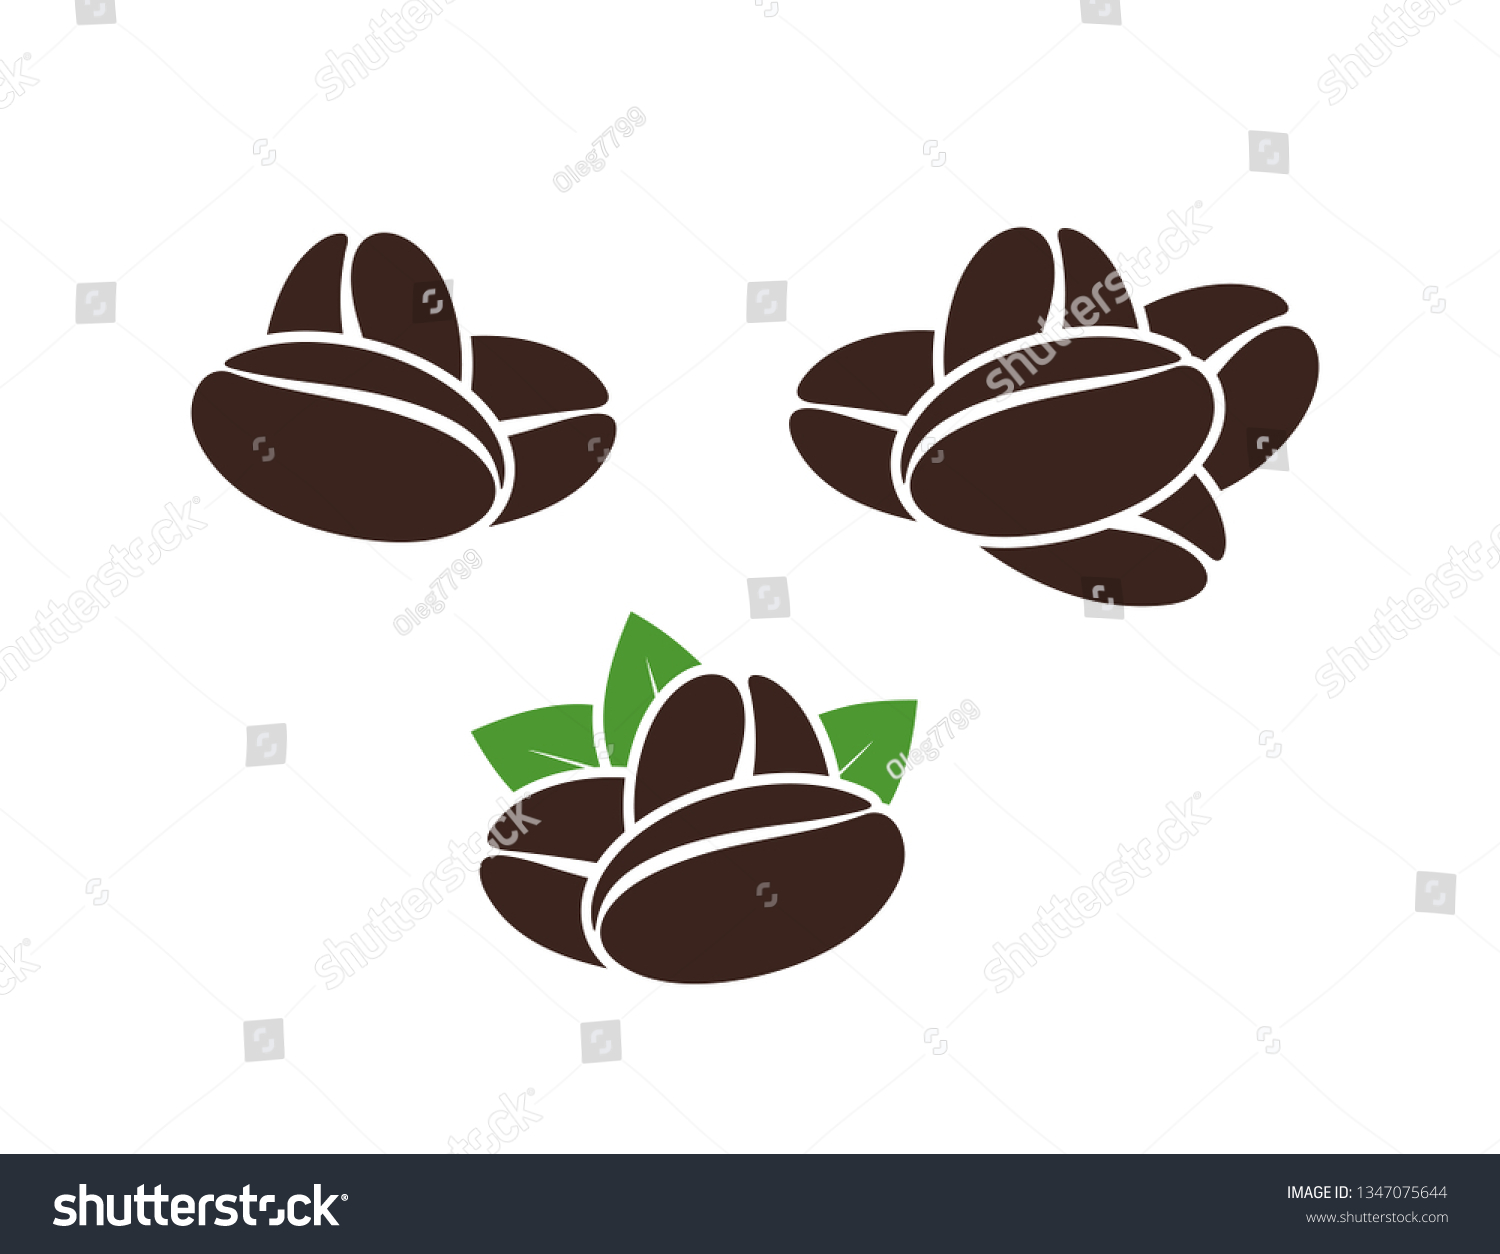 coffee beans logo isolated coffe beans stock vector royalty free 1347075644 shutterstock